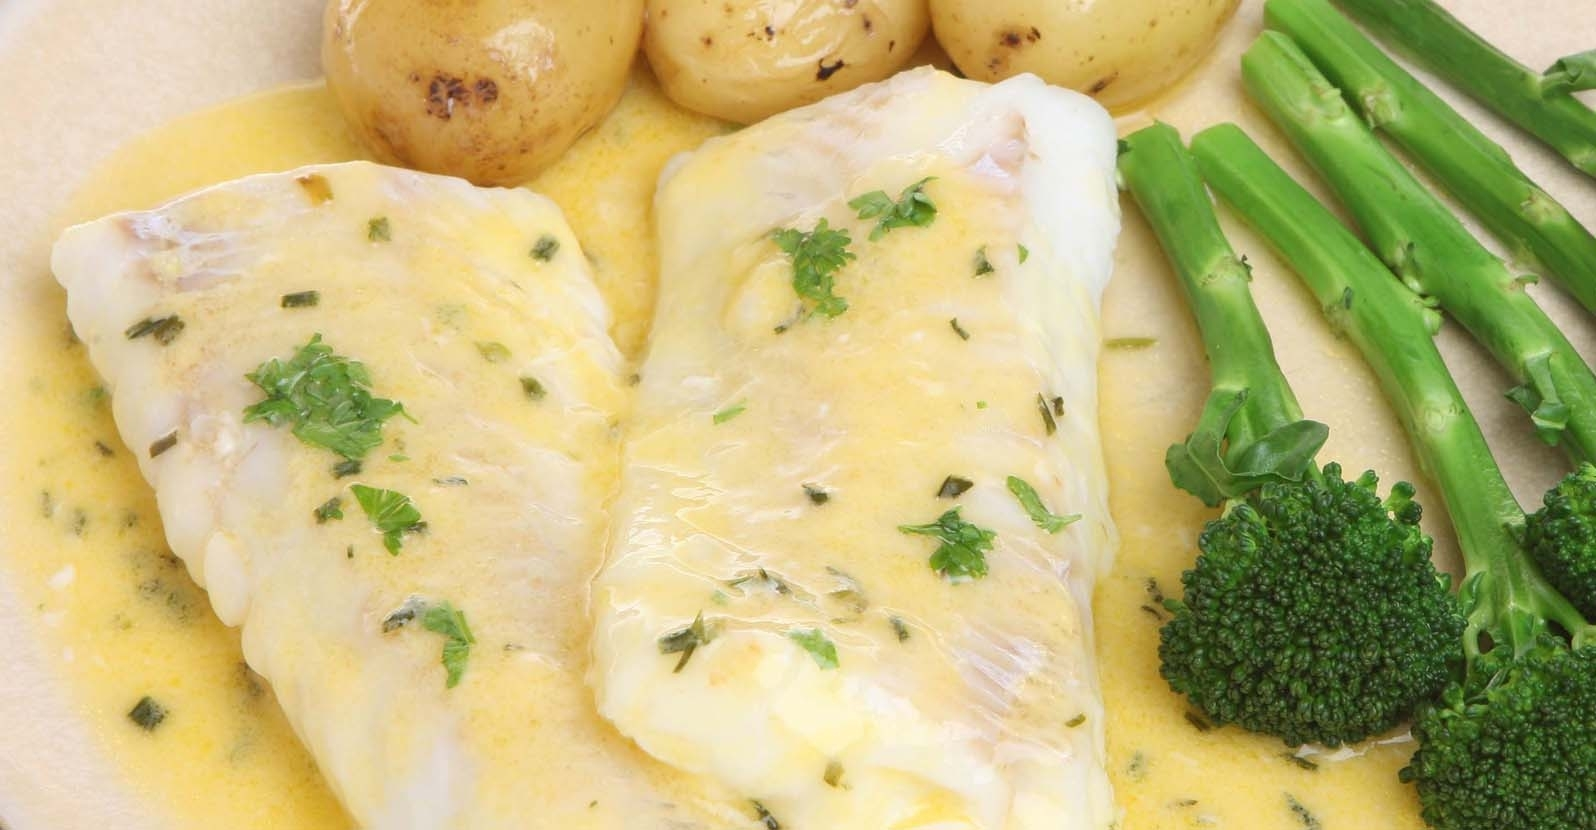 Lemon and Thyme Marinade